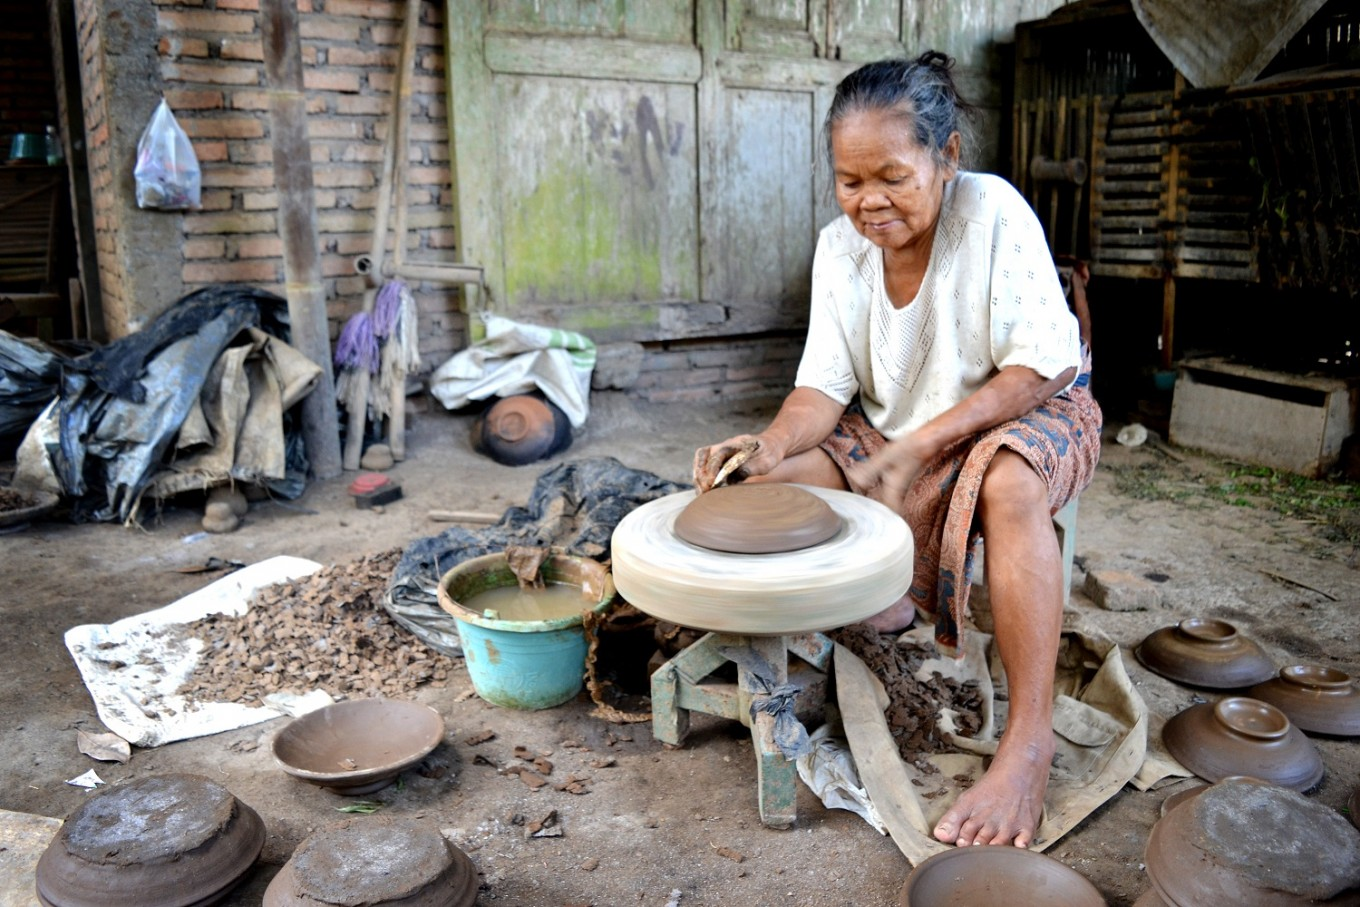 A woman is busy making a pottery in the house yard.